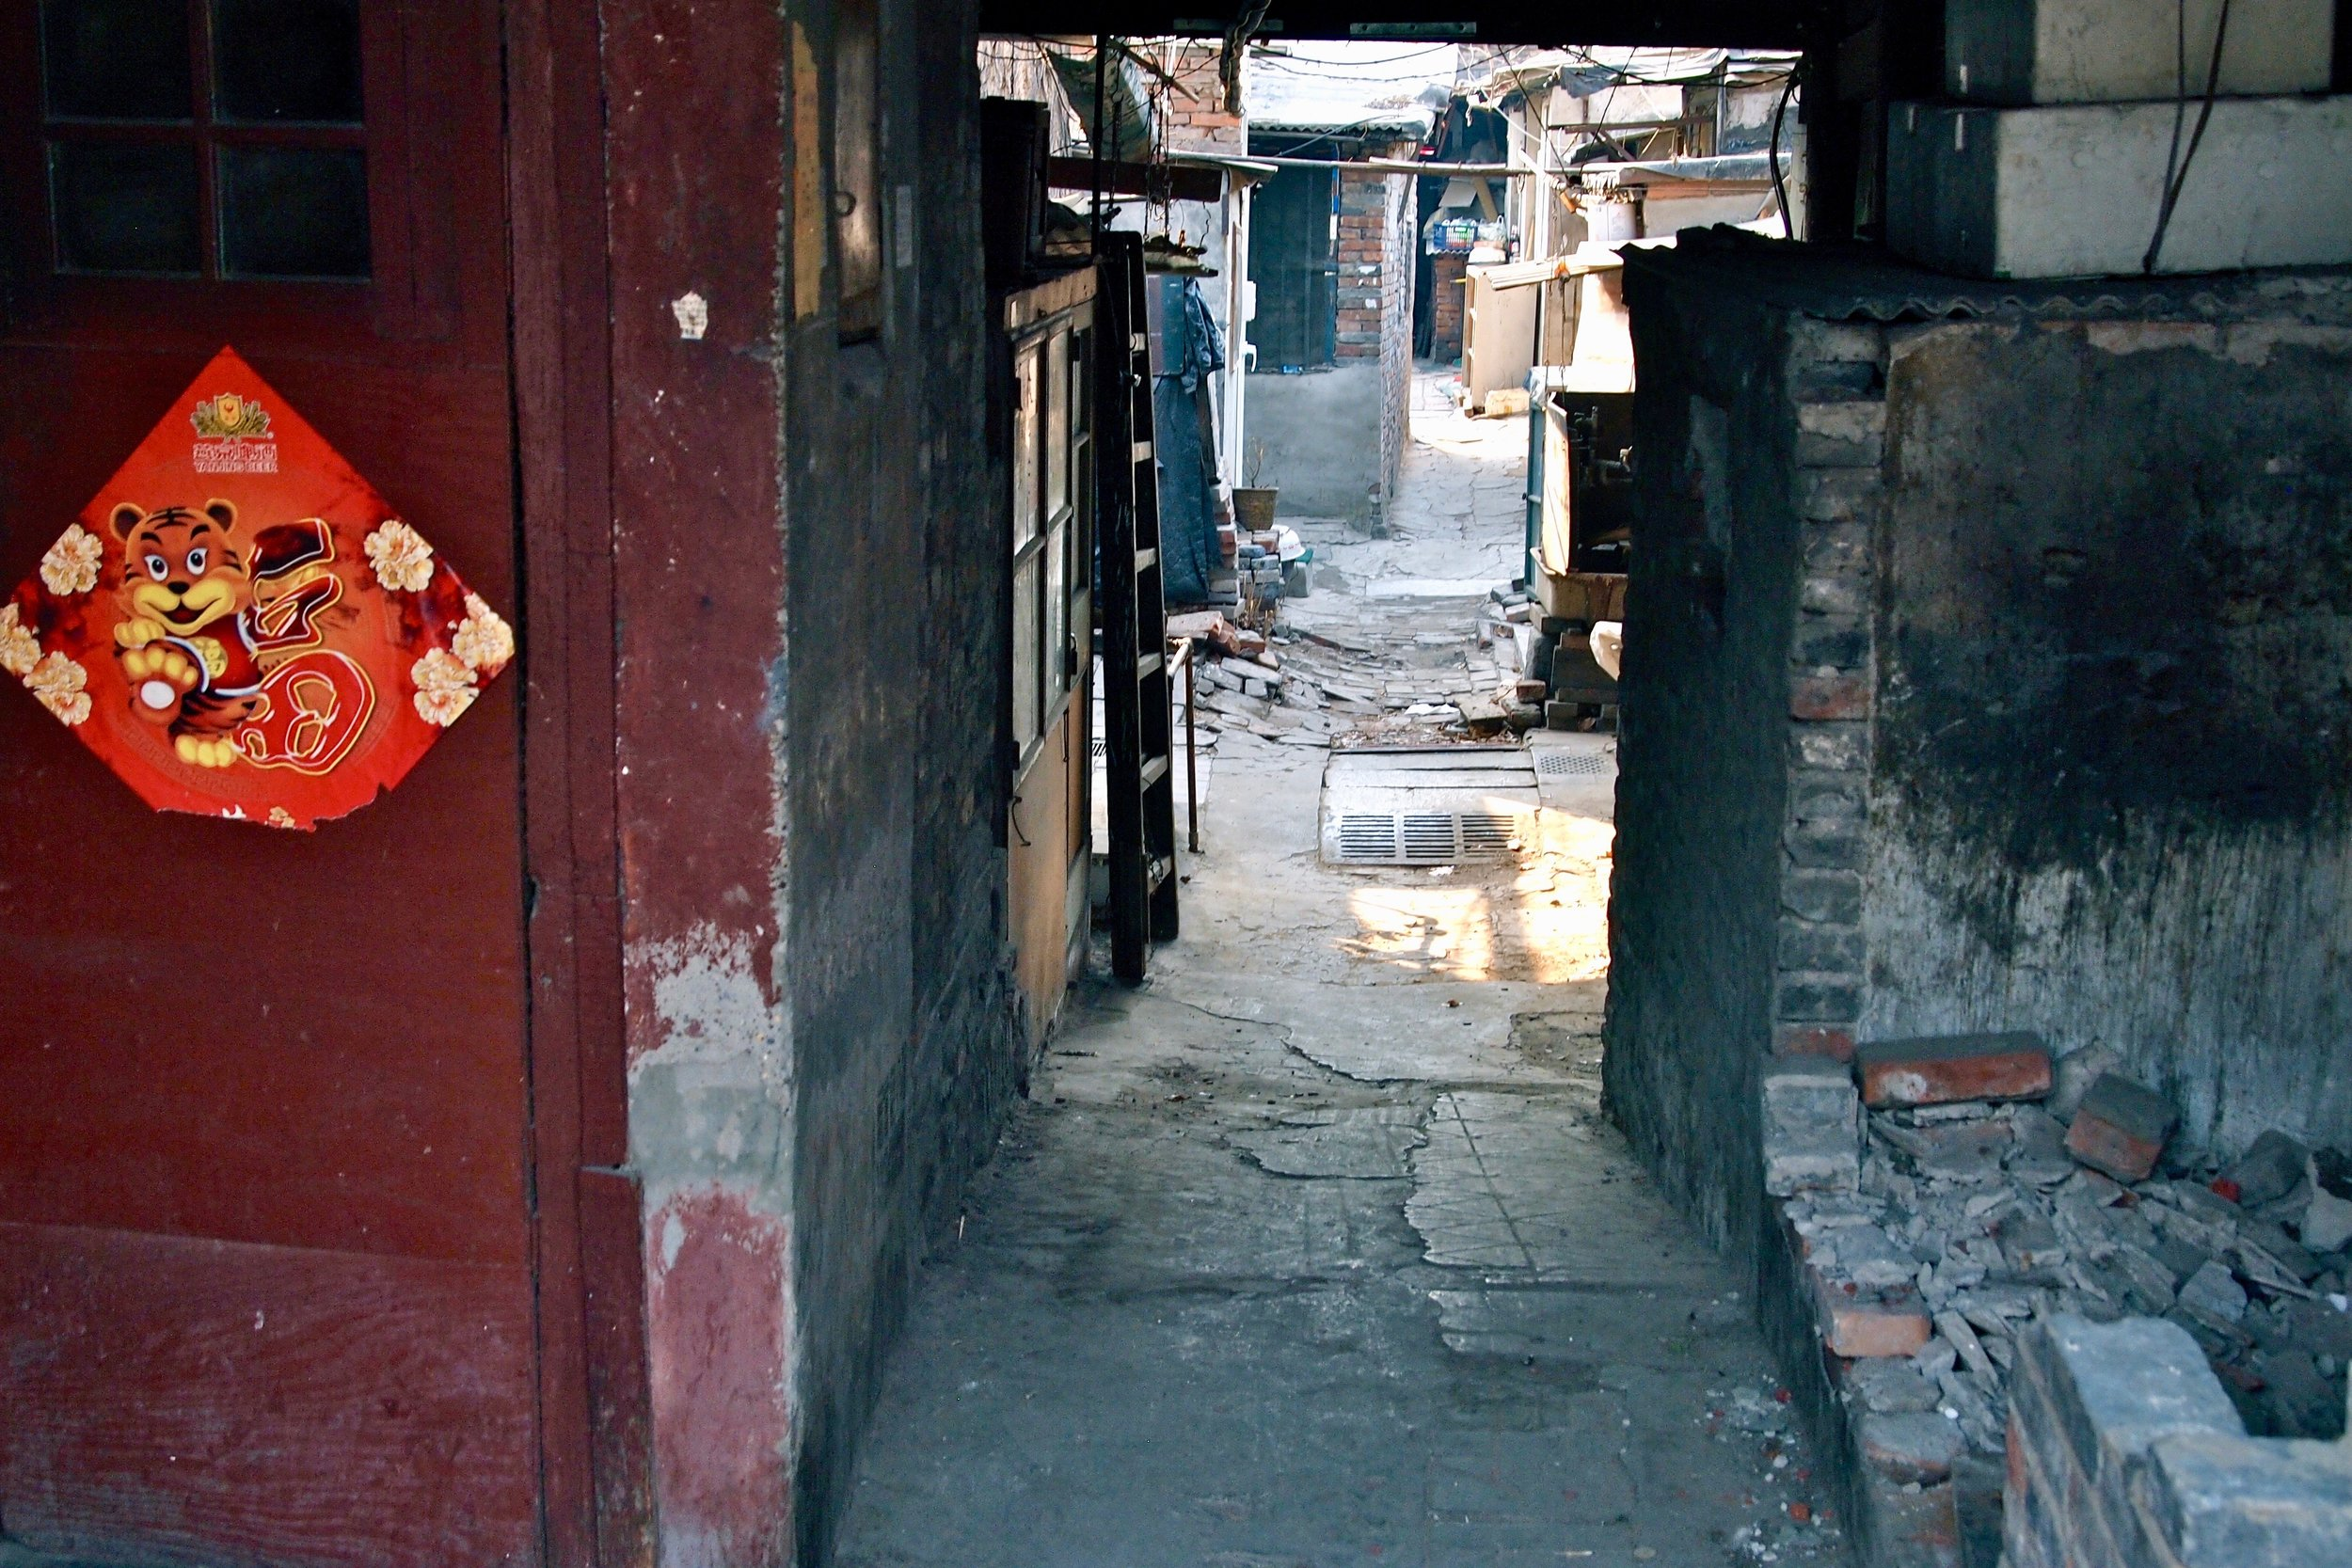 Alley behind Tiananmen Square in Beijing, China. (C) Remko Tanis